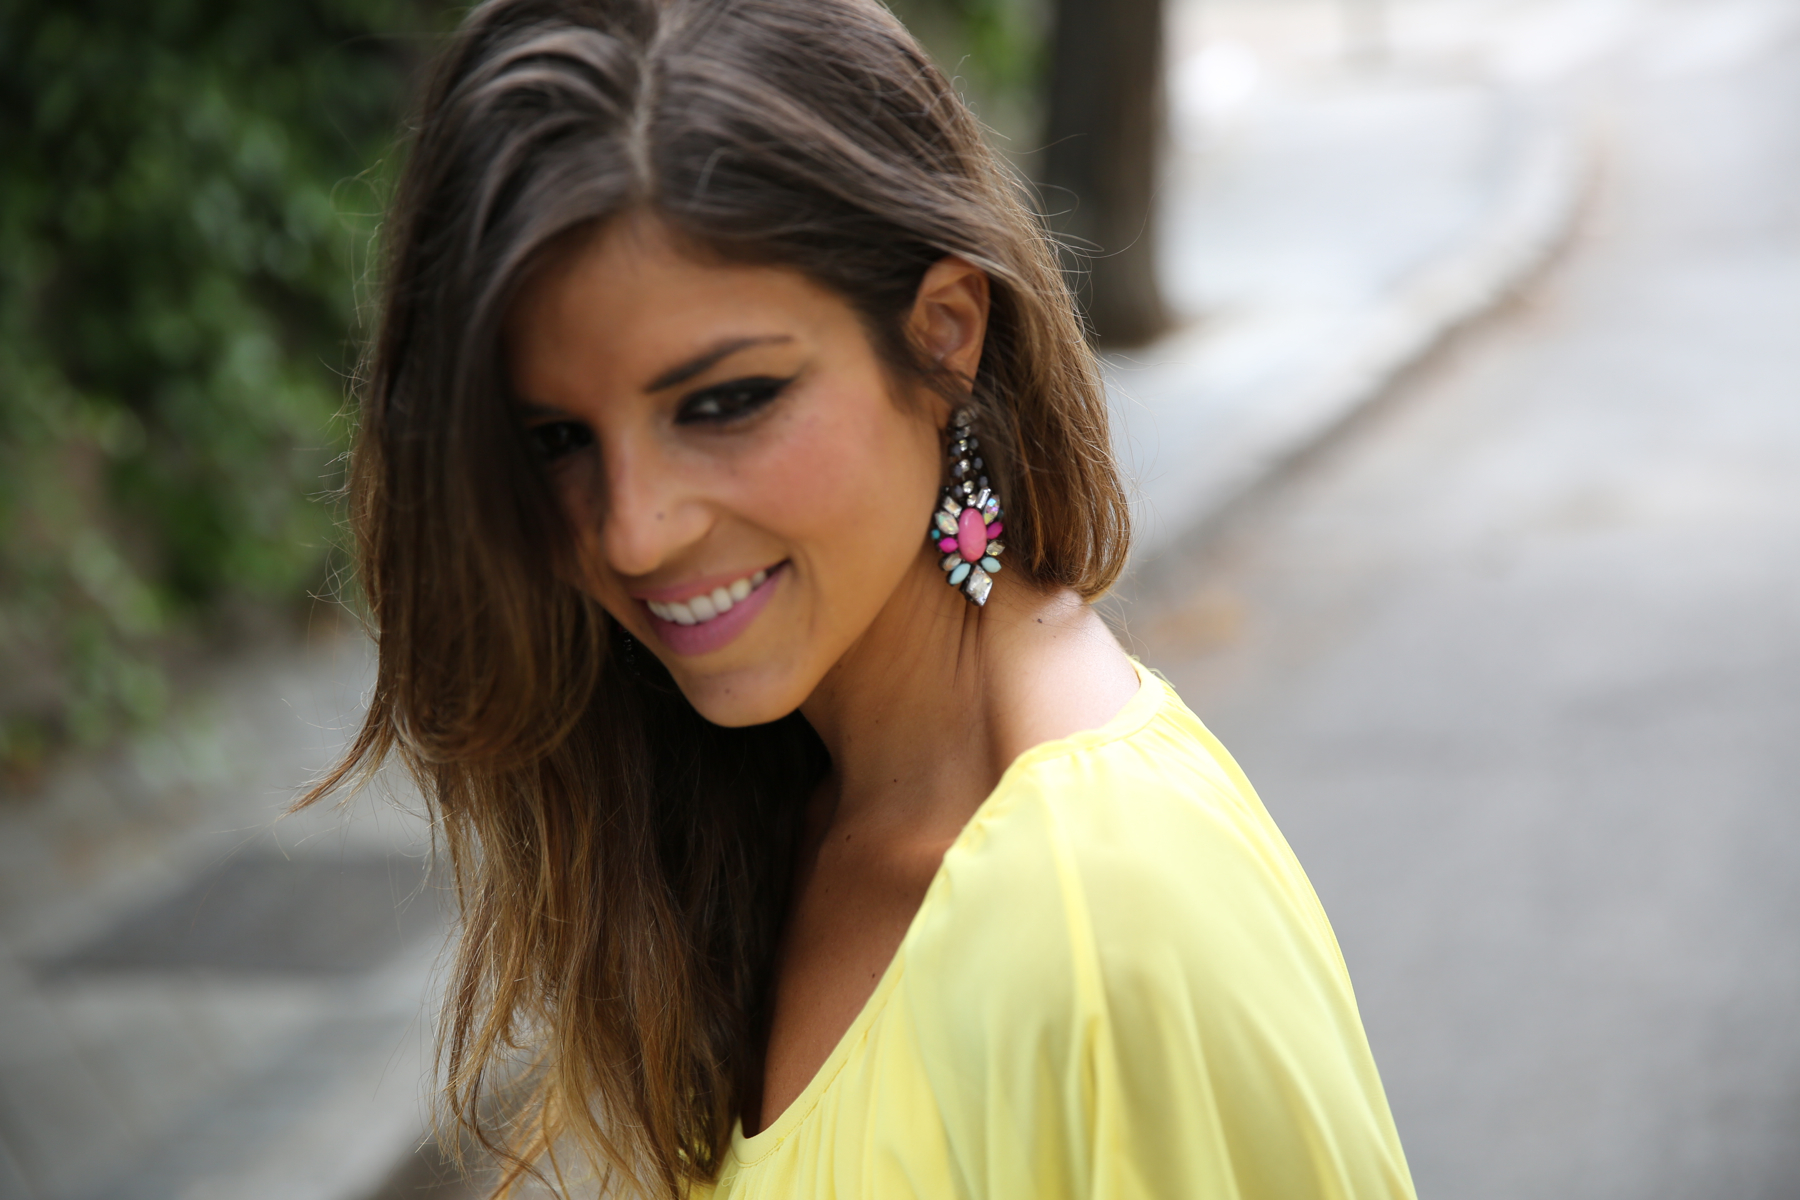 trendy_taste-look-outfit-street_style-ootd-blogger-blog-fashion_spain-moda_españa-yellow_dress-vestido_amarillo-boda-wedding-evento-clutch_pedreria-mas34-sandalias_azules-blue_sandals-3